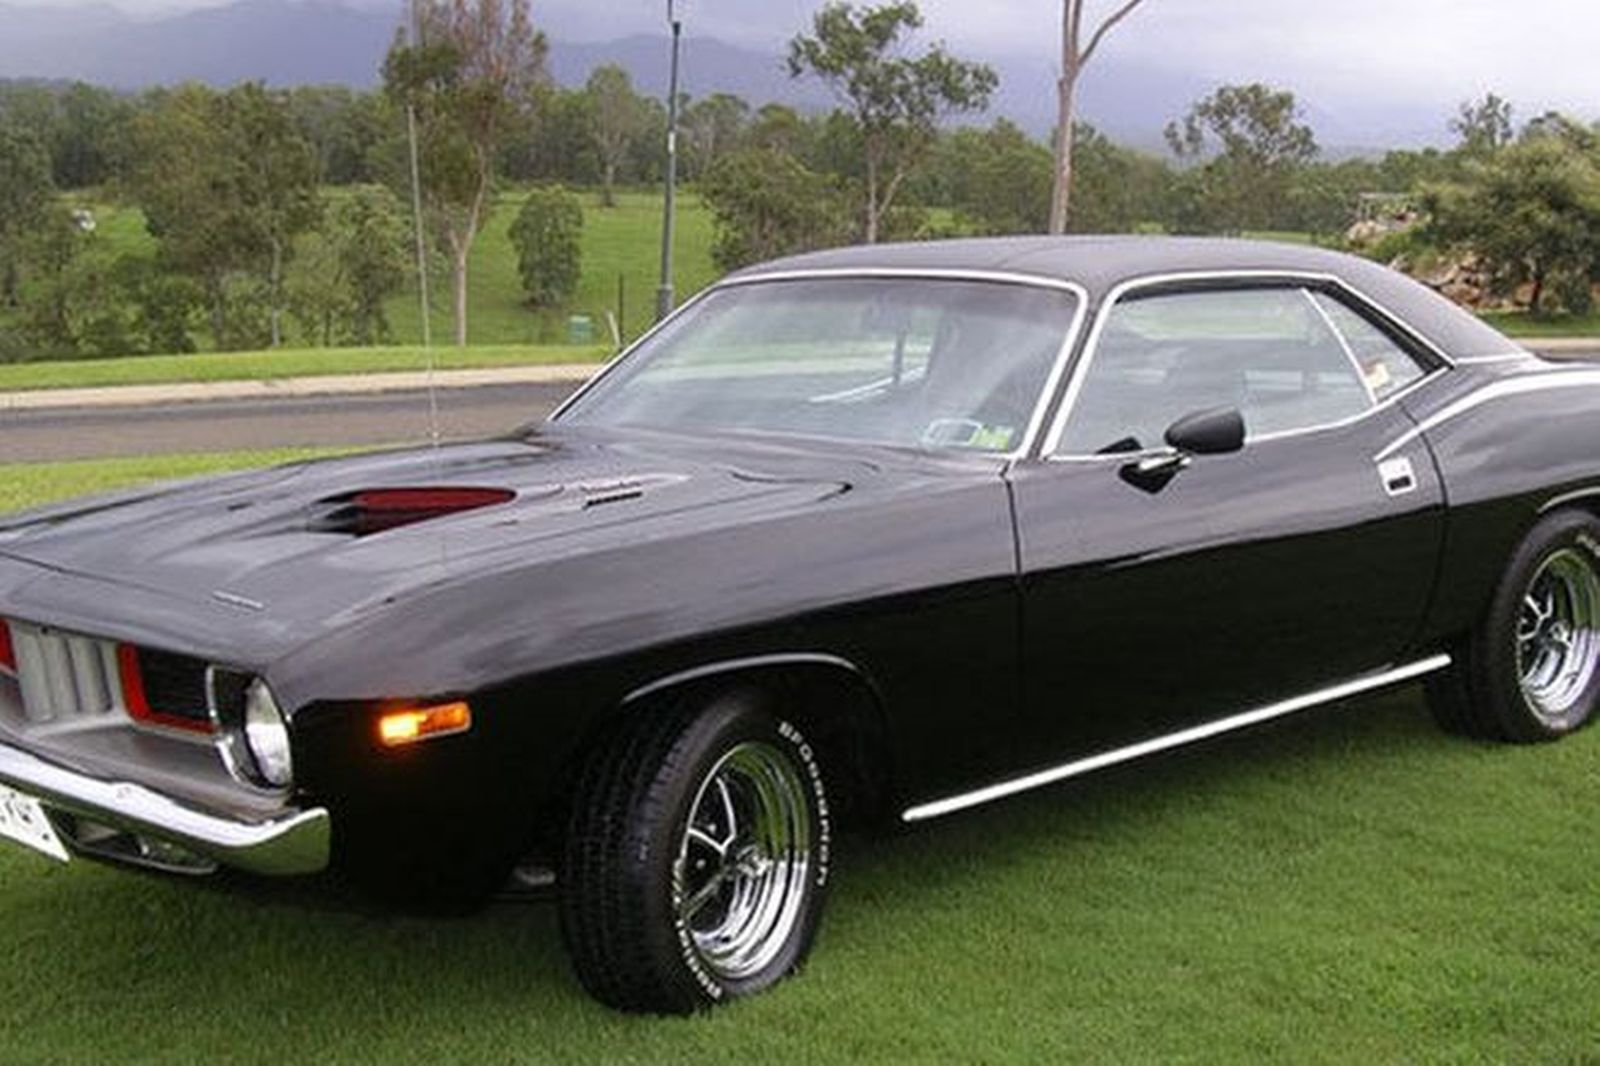 Plymouth 'Cuda 340 Hardtop (LHD) Auctions - Lot 4 - Shannons